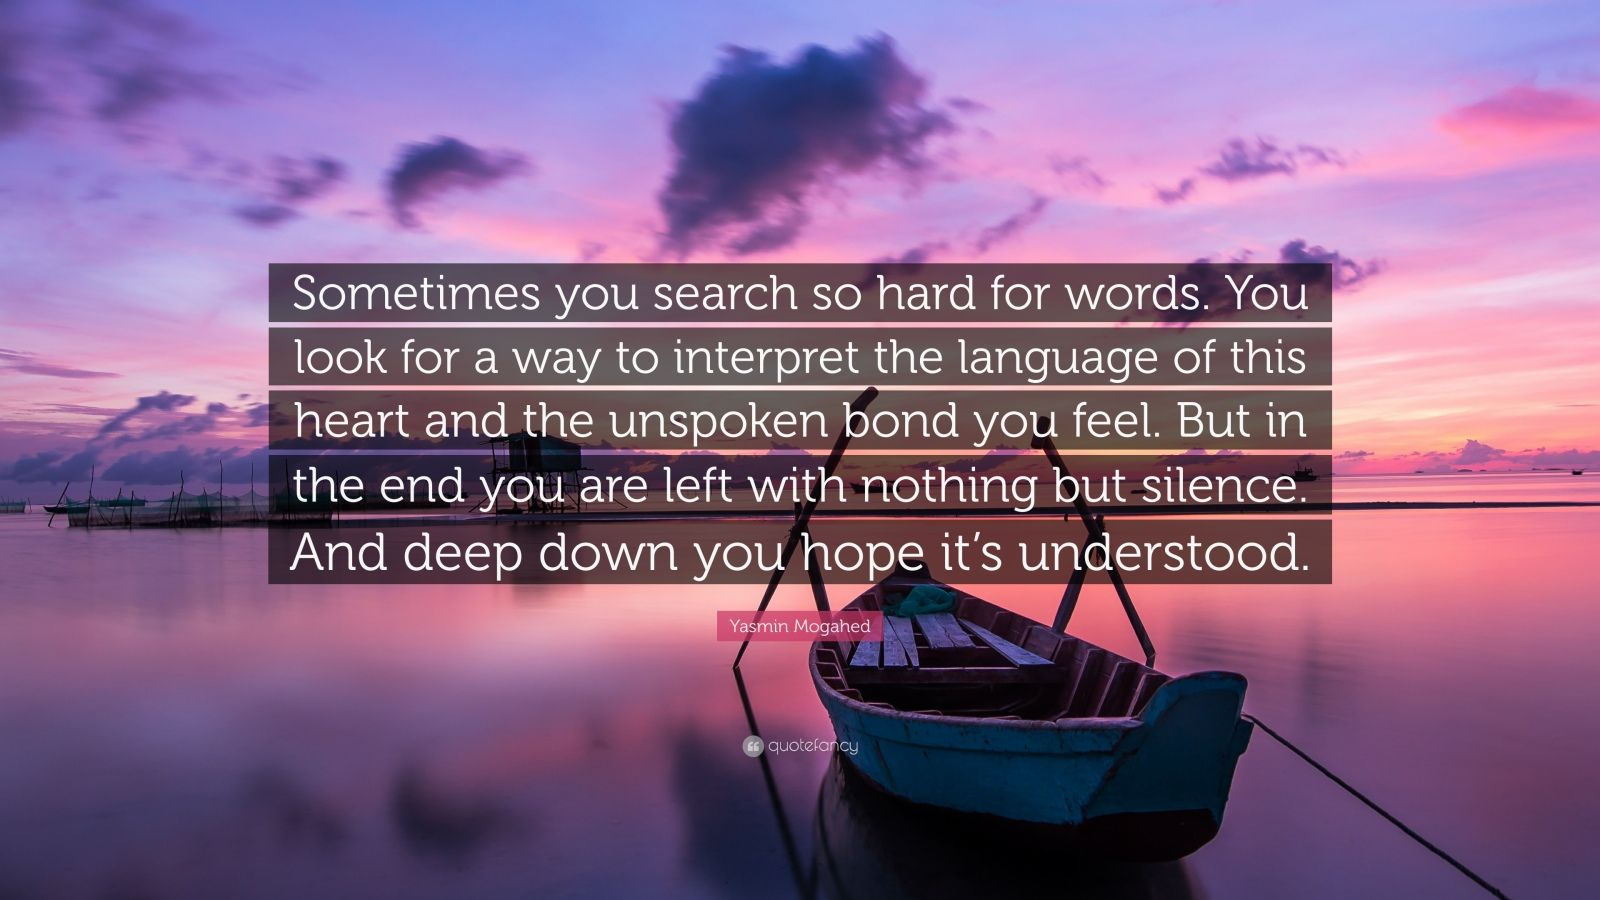 "Yasmin Mogahed Quote: ""Sometimes you search so hard for words. You look for a way to interpret the language of this heart and the unspoken bond you feel. But in the end you are left with nothing but silence. And deep down you hope it's understood."""